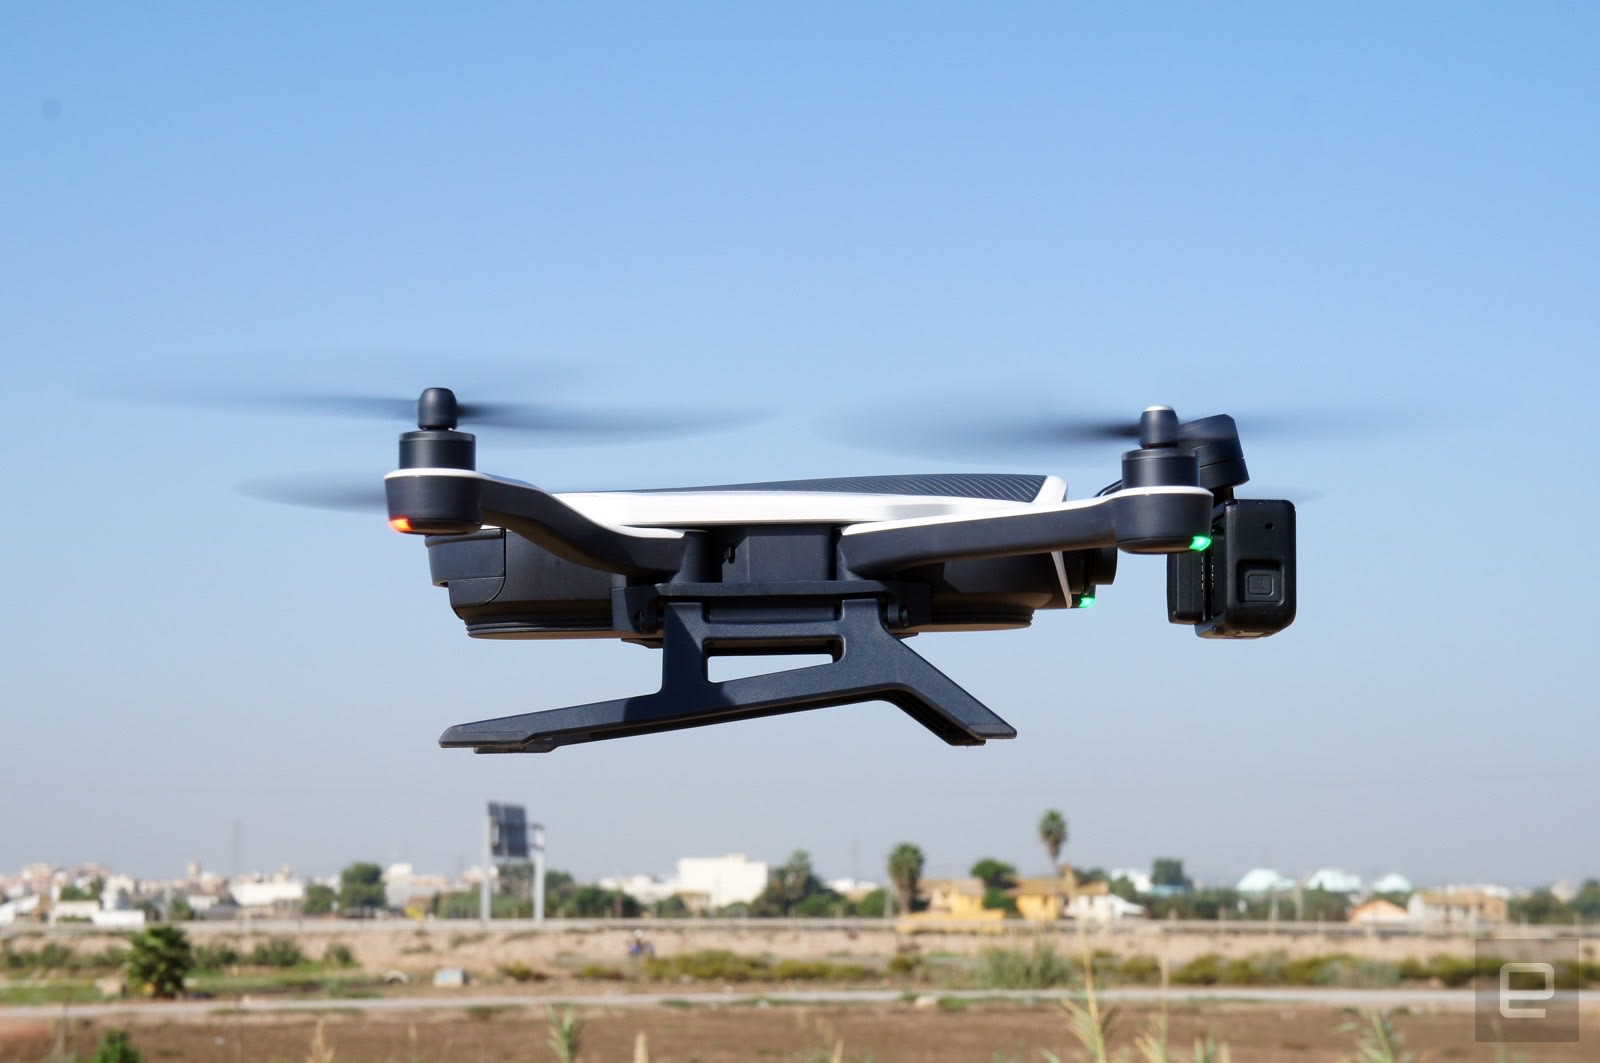 GoPro Karma review: A decent drone with stiff competition